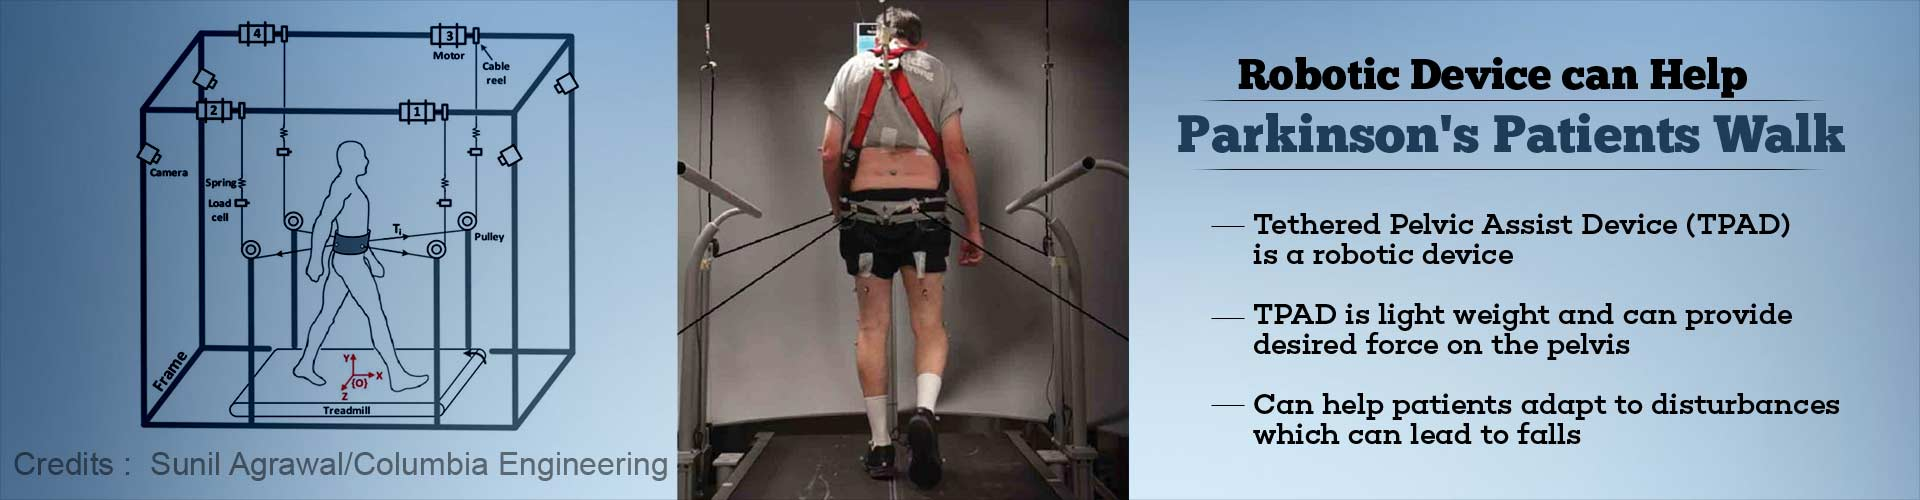 Robotic device can help parkinson's patients walk